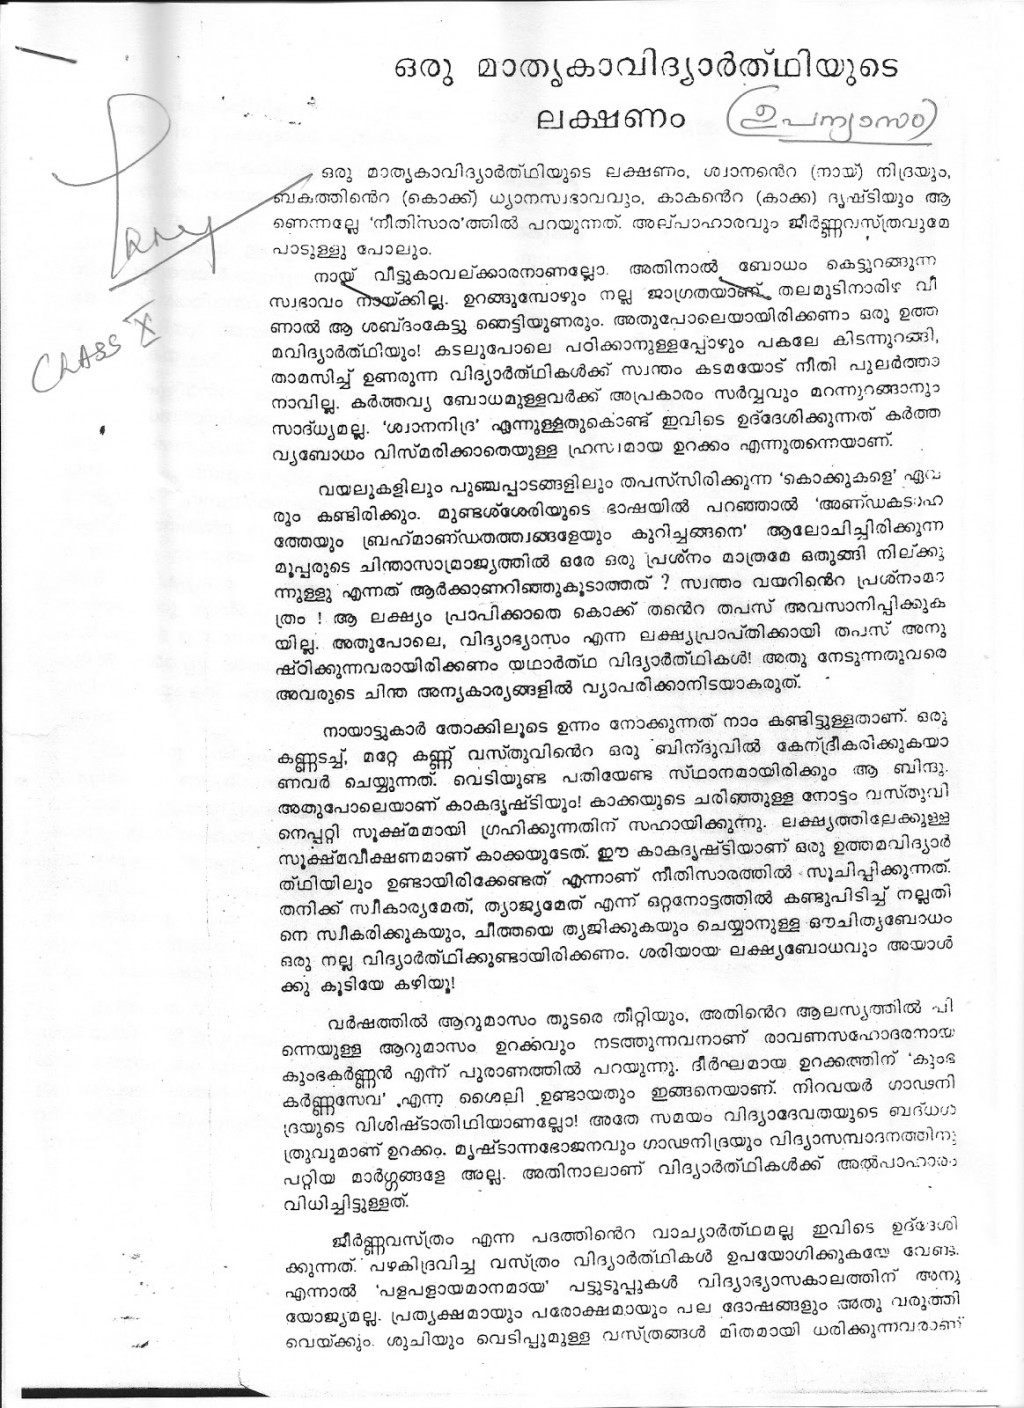 006 Essay Example About Good Student Qualities Of An Ideal Tancy Jacobs Malayalam Portal Pdf I In Urdu Traits Telugu Punjabi English Successful Hindi Words Staggering A Responsibilities Write What Are The Quality Characteristics Large